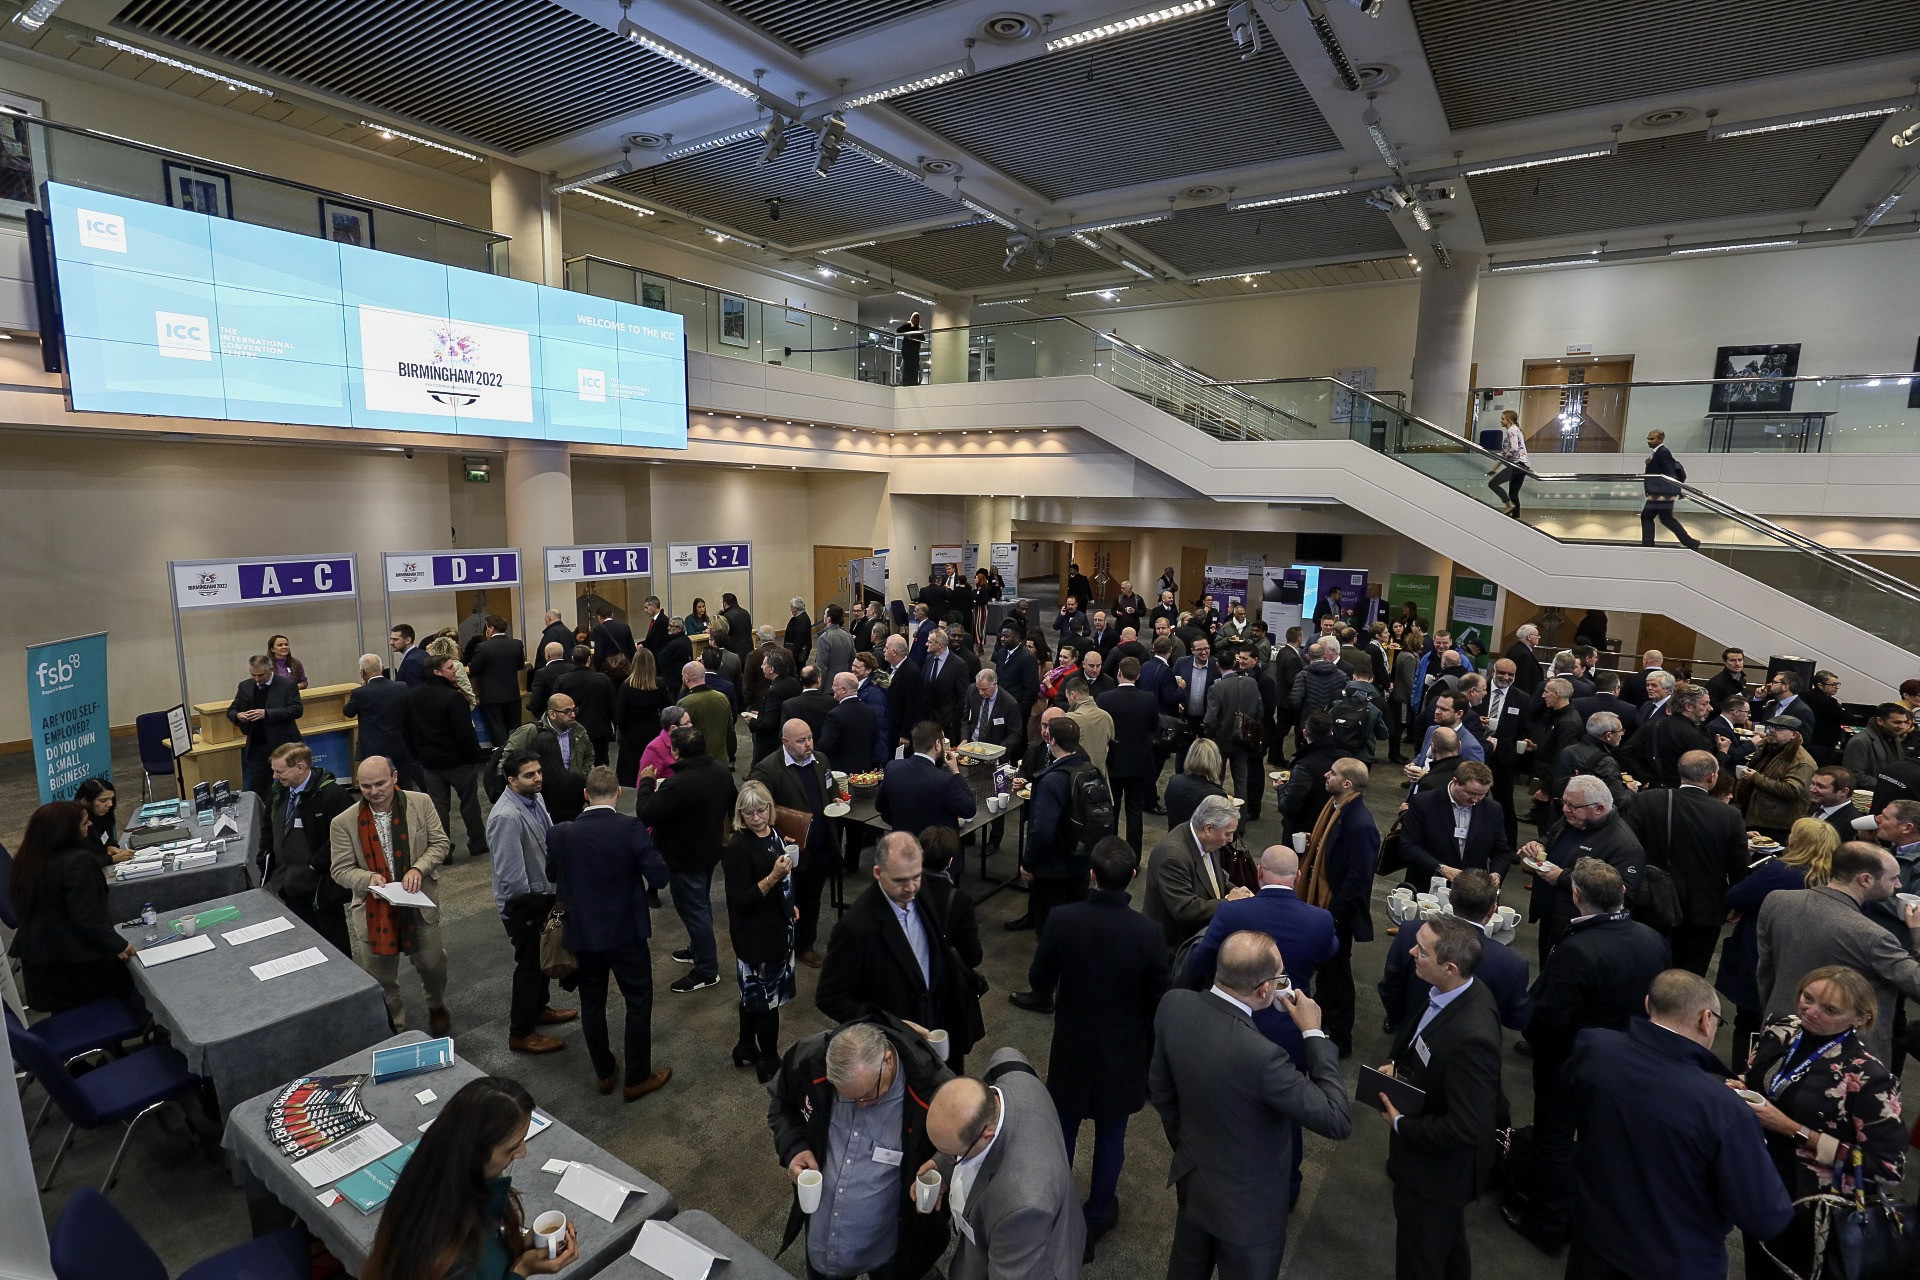 Hundreds attend business briefing for Birmingham 2022 Commonwealth Games